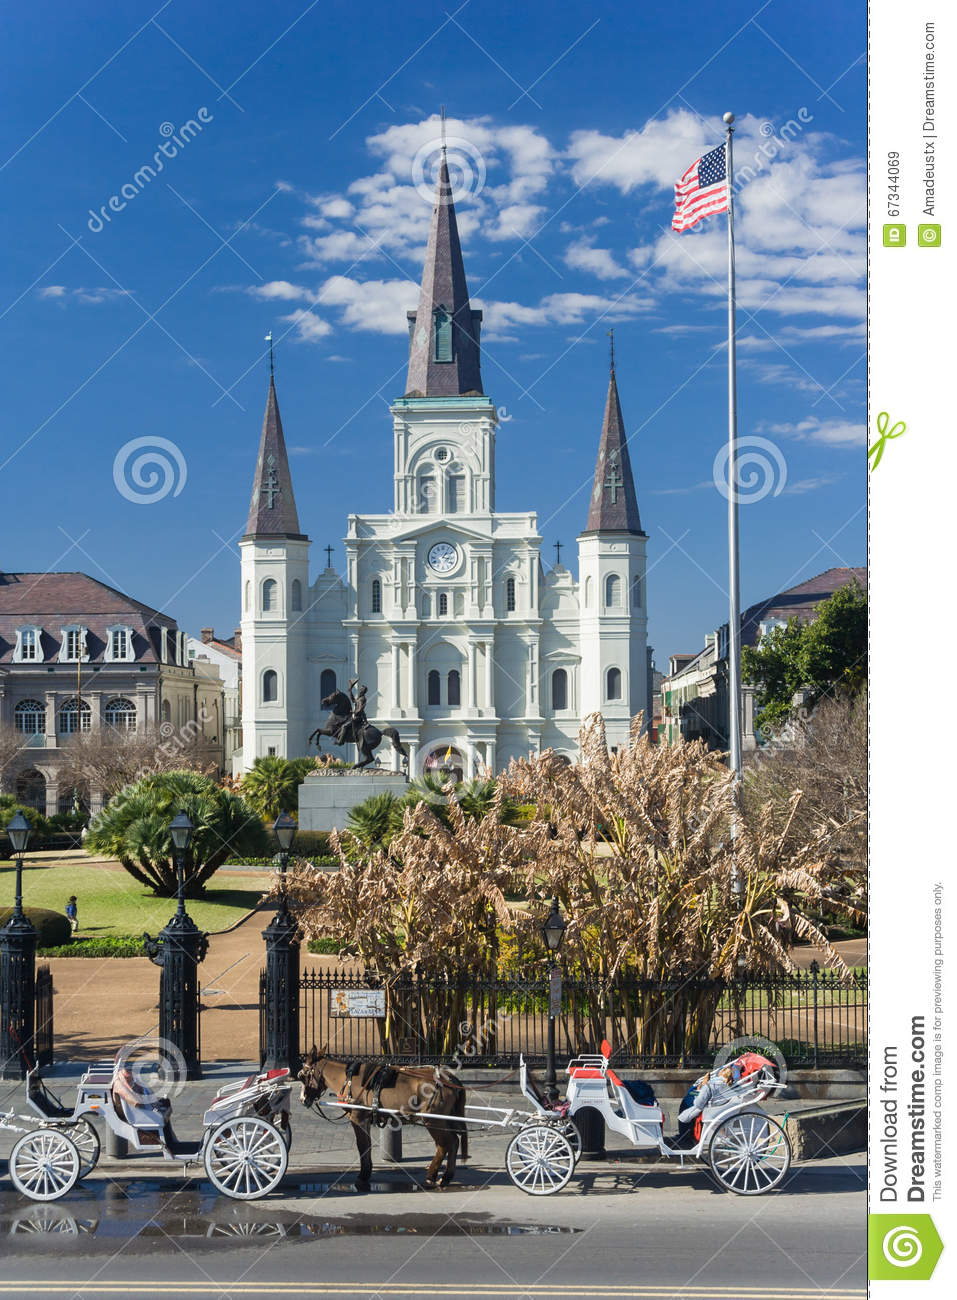 St Louis Cathedral en Jackson Square in Frans Kwart, New Orleans, Louisiane